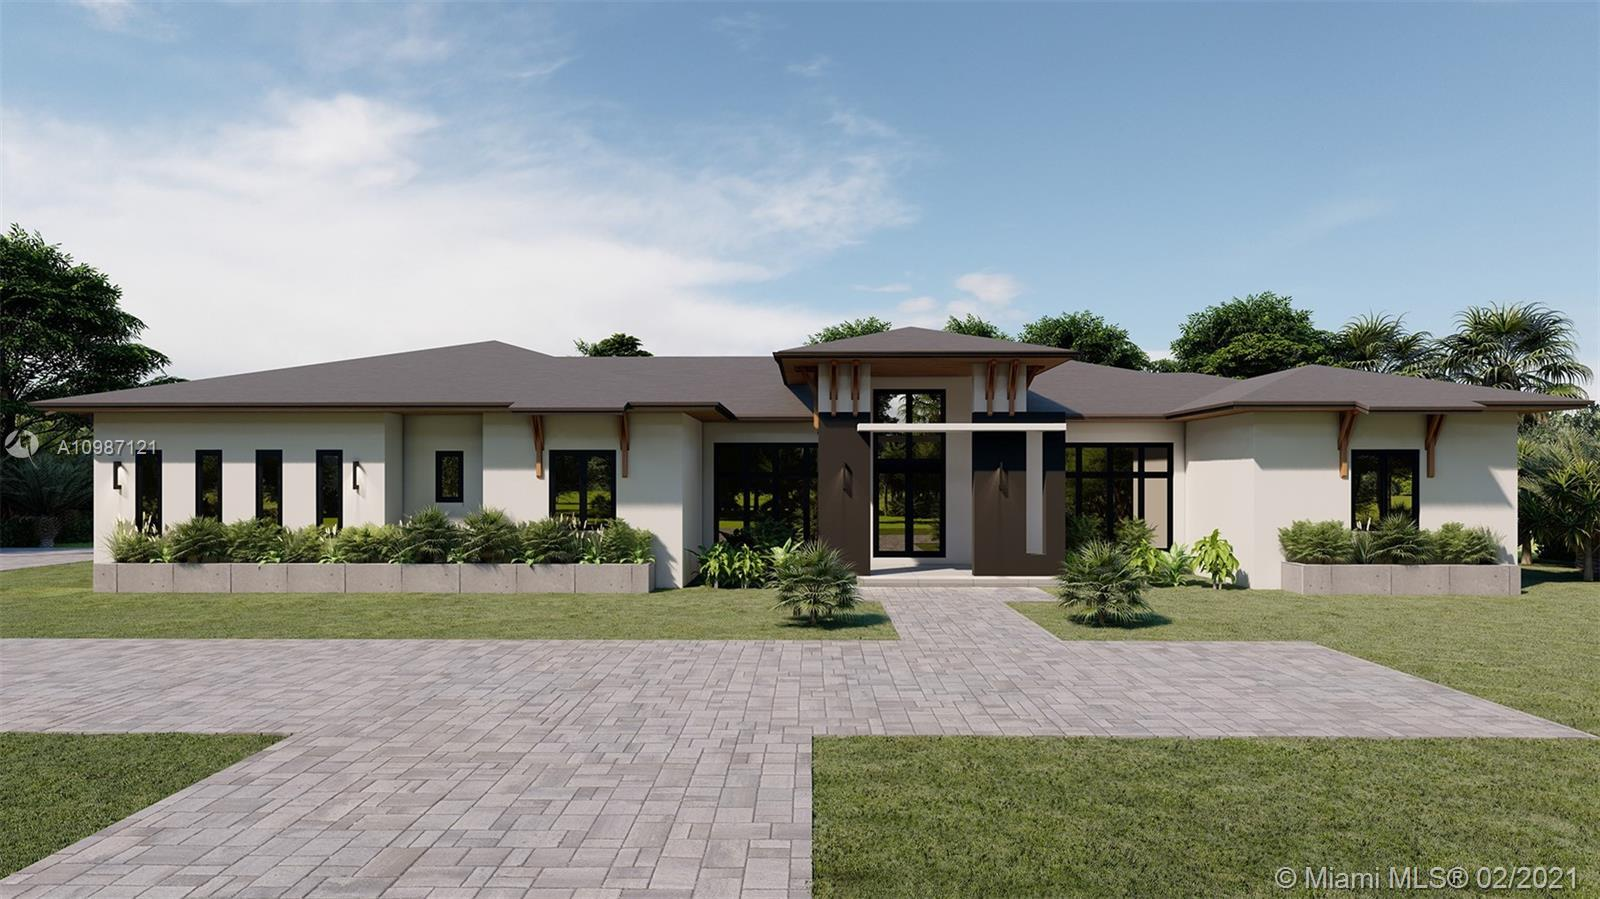 Brand-New One-story Modern Estate built with the finest finishes. Welcomed by enormous windows & doo